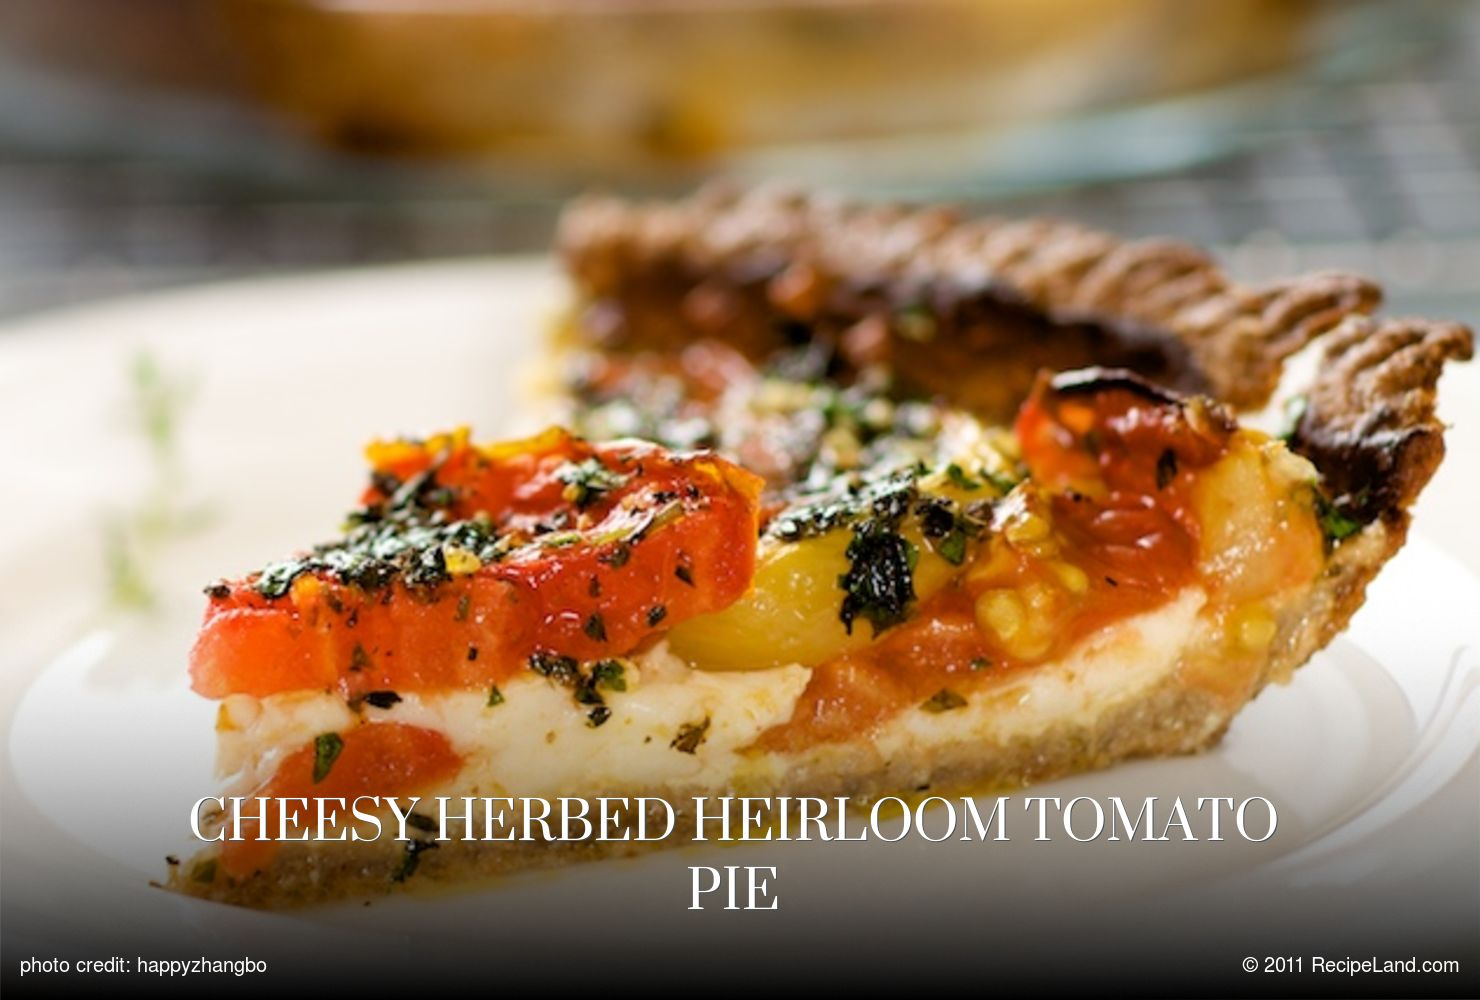 Cheesy Herbed Heirloom Tomato Pie